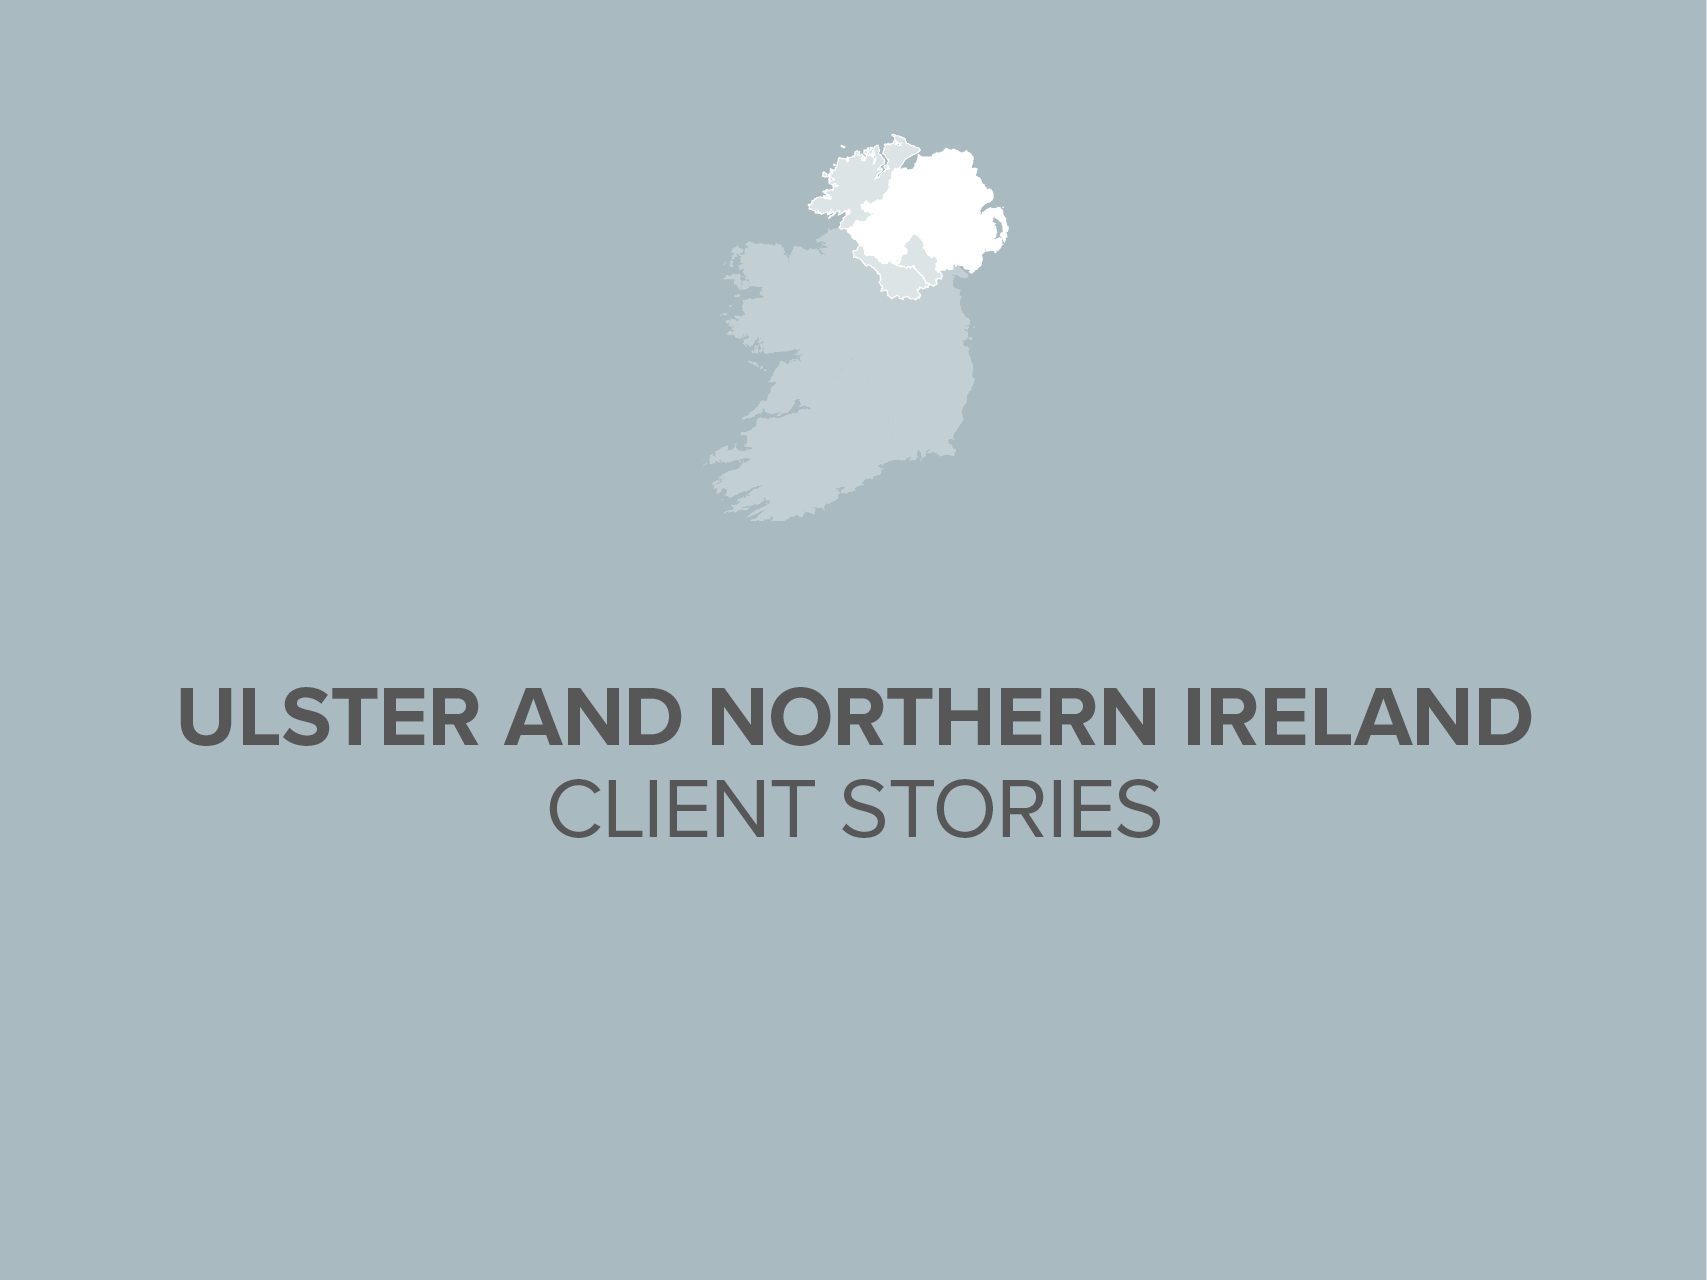 Ulster and Northern Ireland Stories